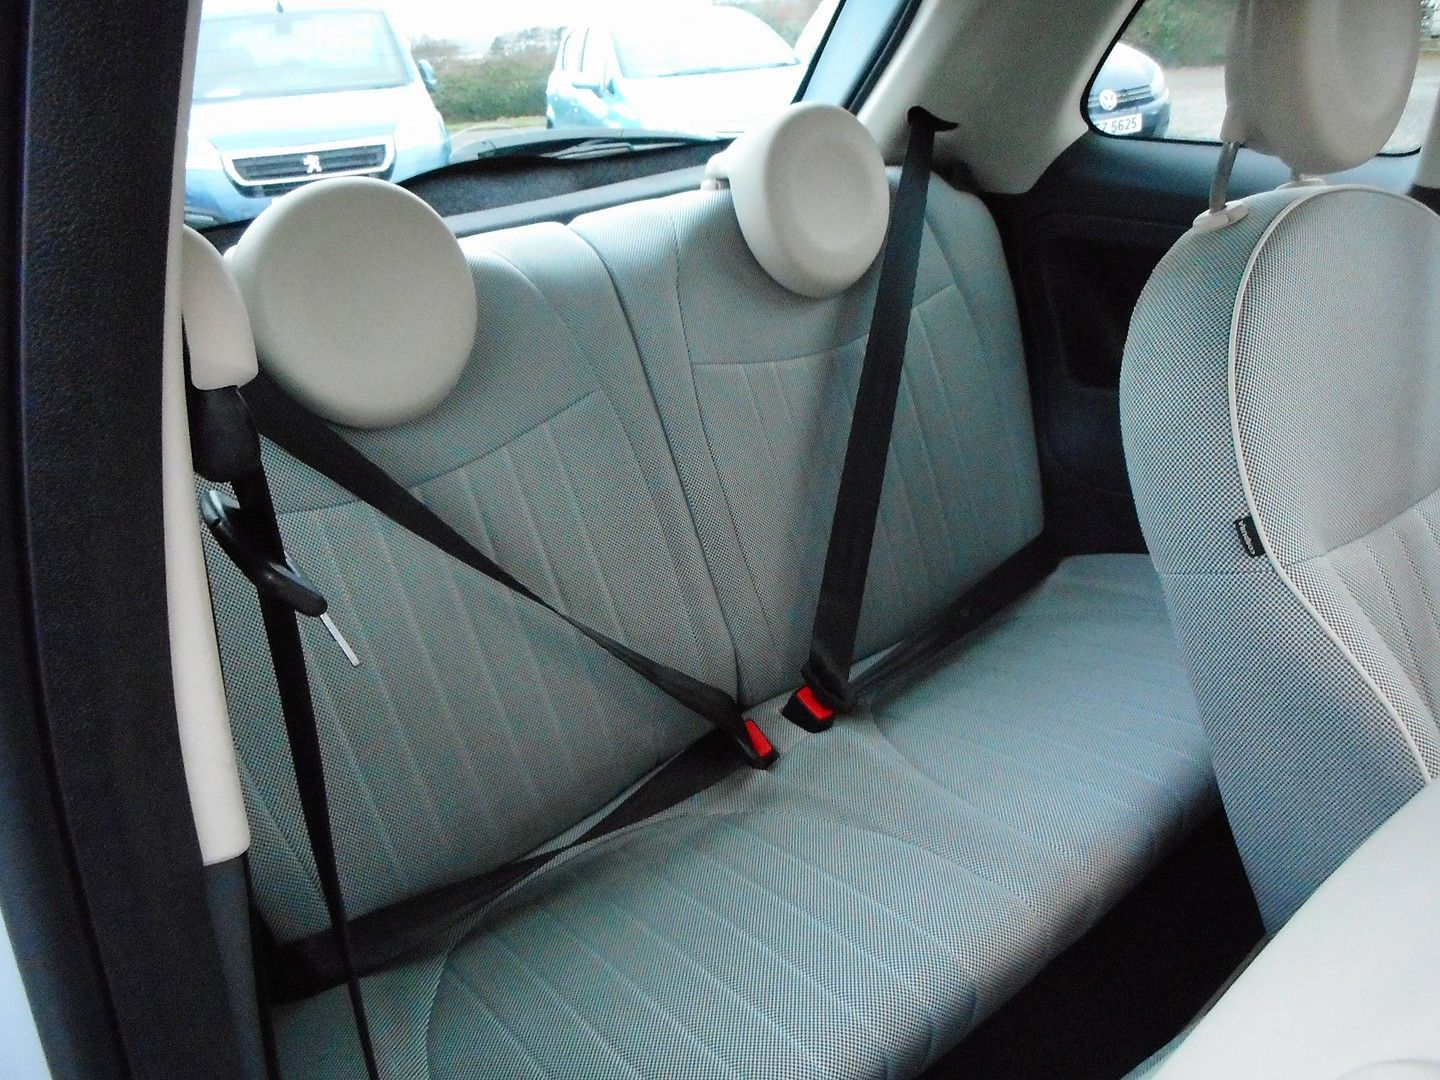 FIAT 500 1.2i Lounge (2010) - Picture 8